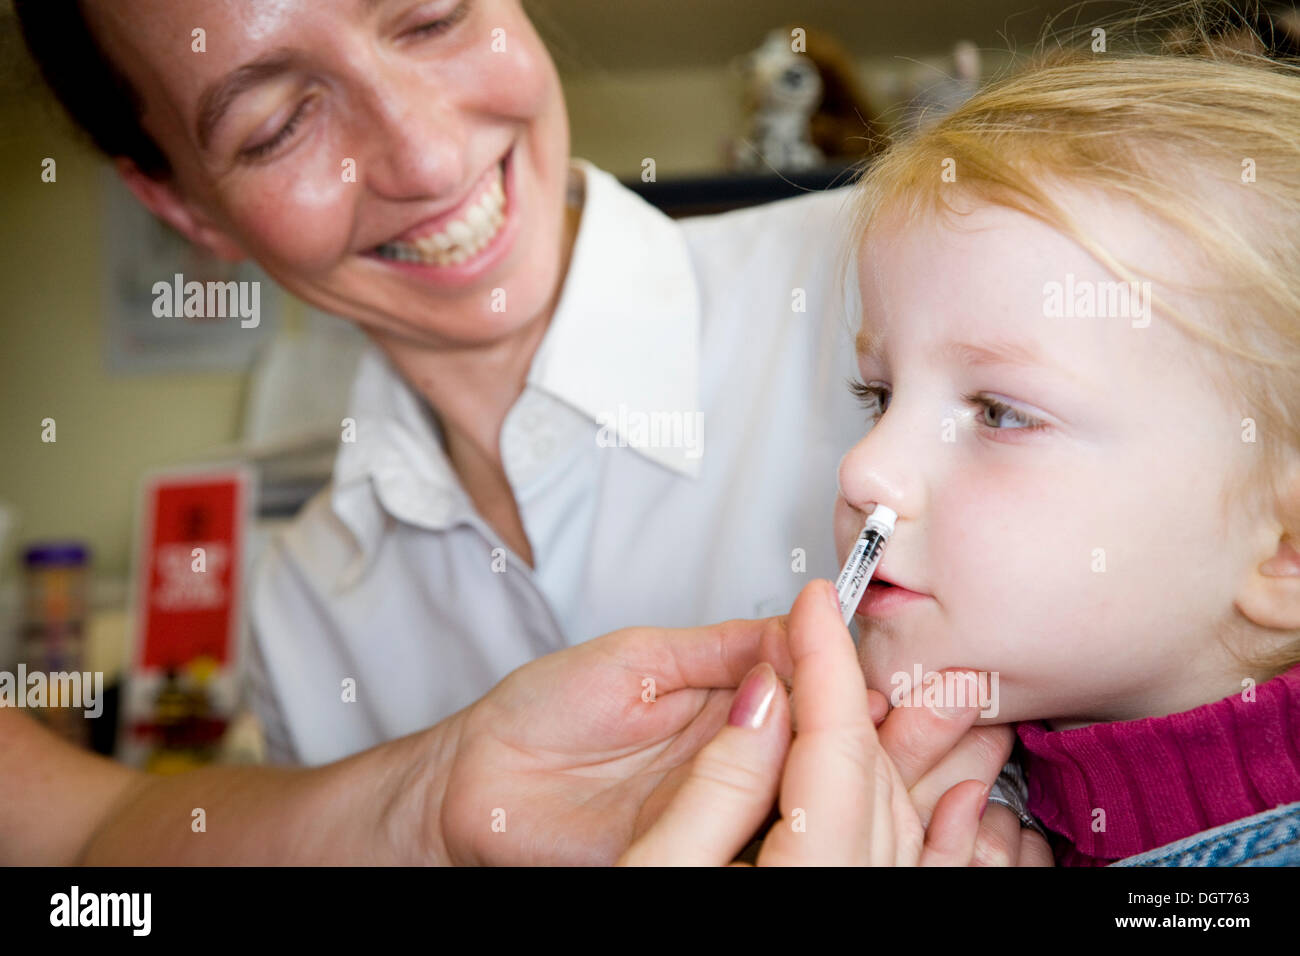 Three and a half year old child, accompanied by her mum / mother, receives a dose of the new flu vaccine - Fluenz - in the form of a nasal spray immunisation from her NHS GP Practice nurse. UK. - Stock Image